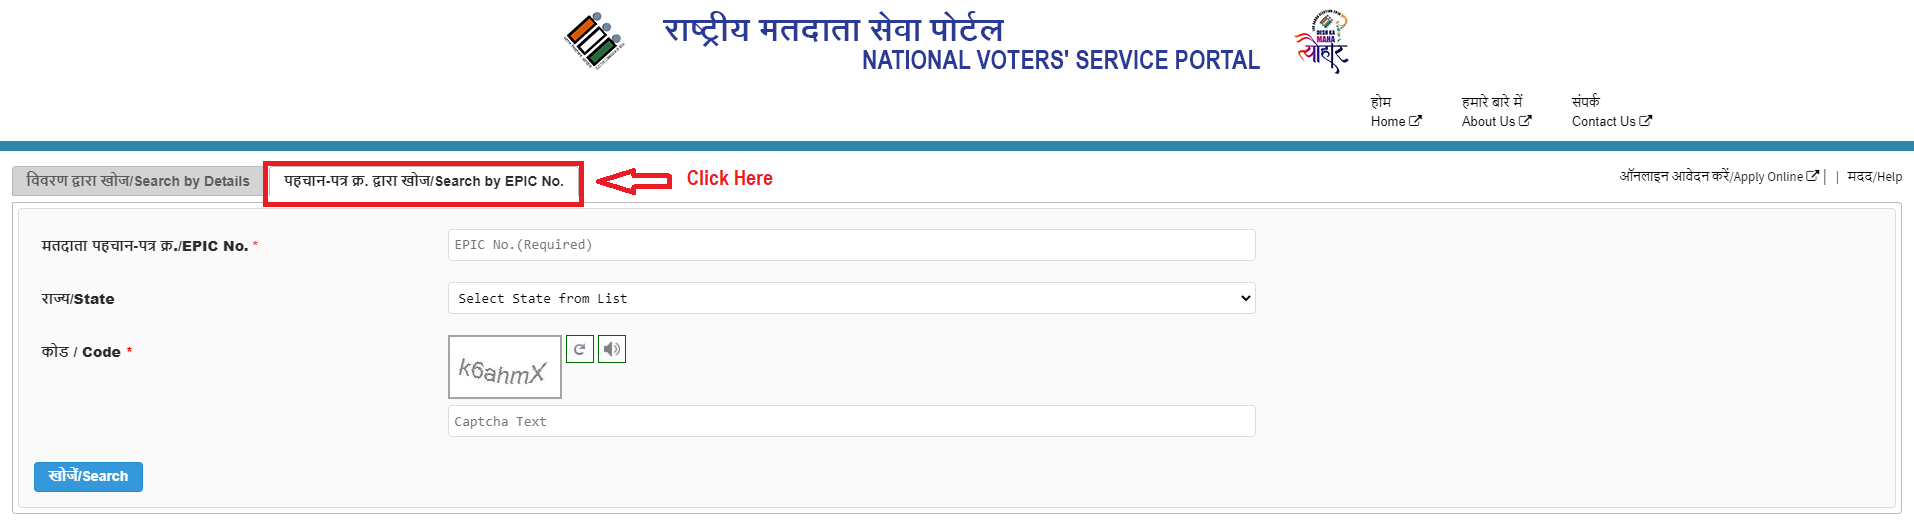 Name in voter list by EPIC Number